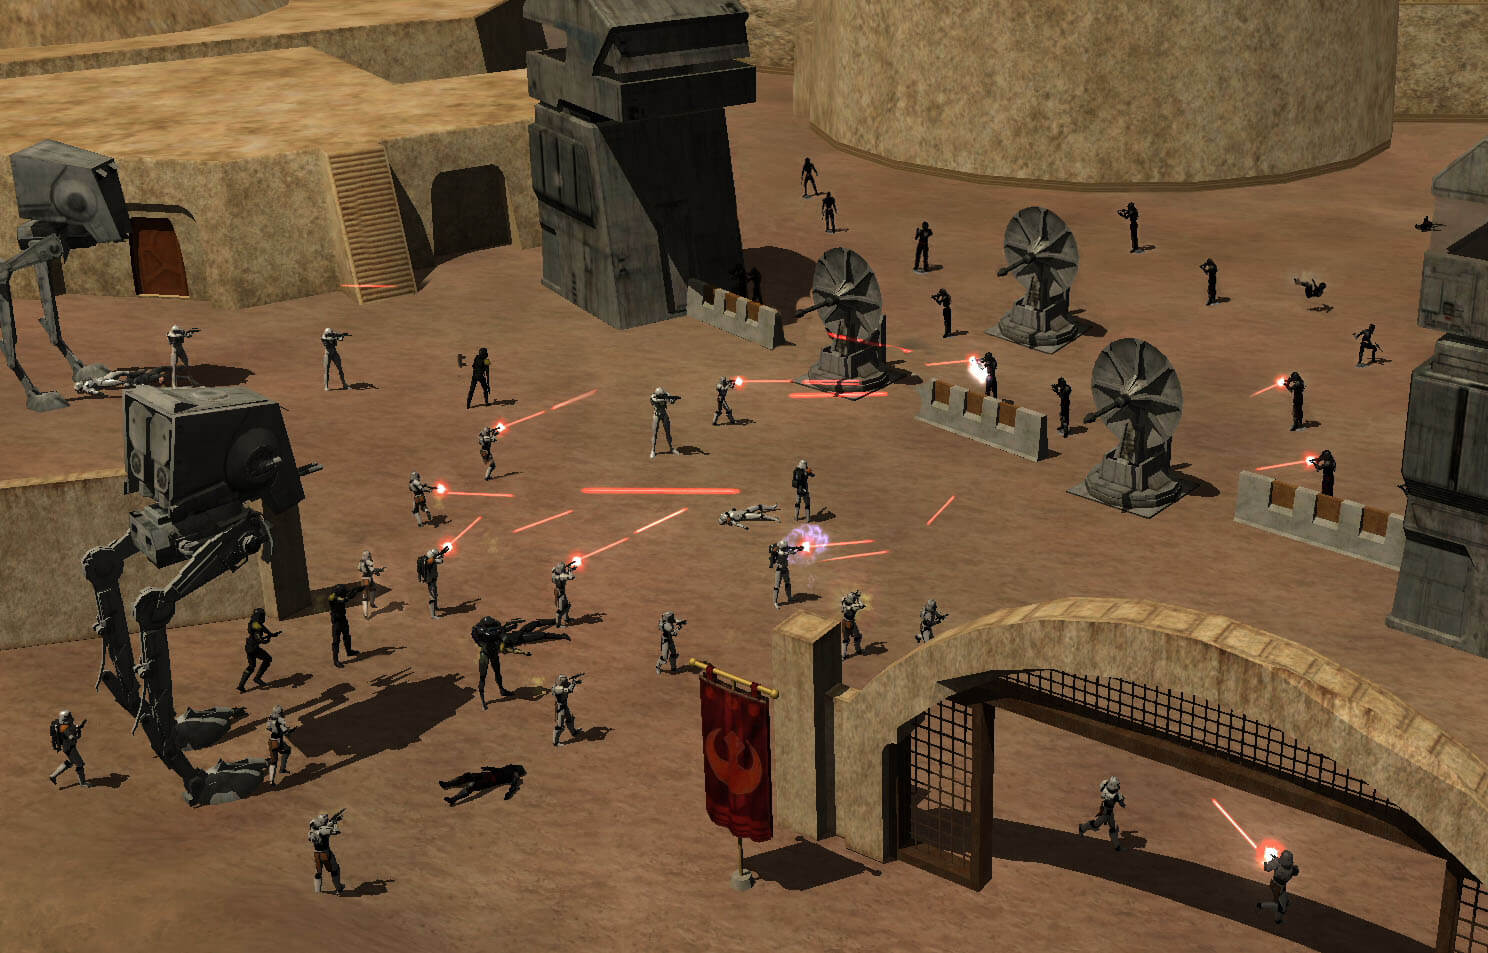 Eine Schlacht in Star Wars Galaxies